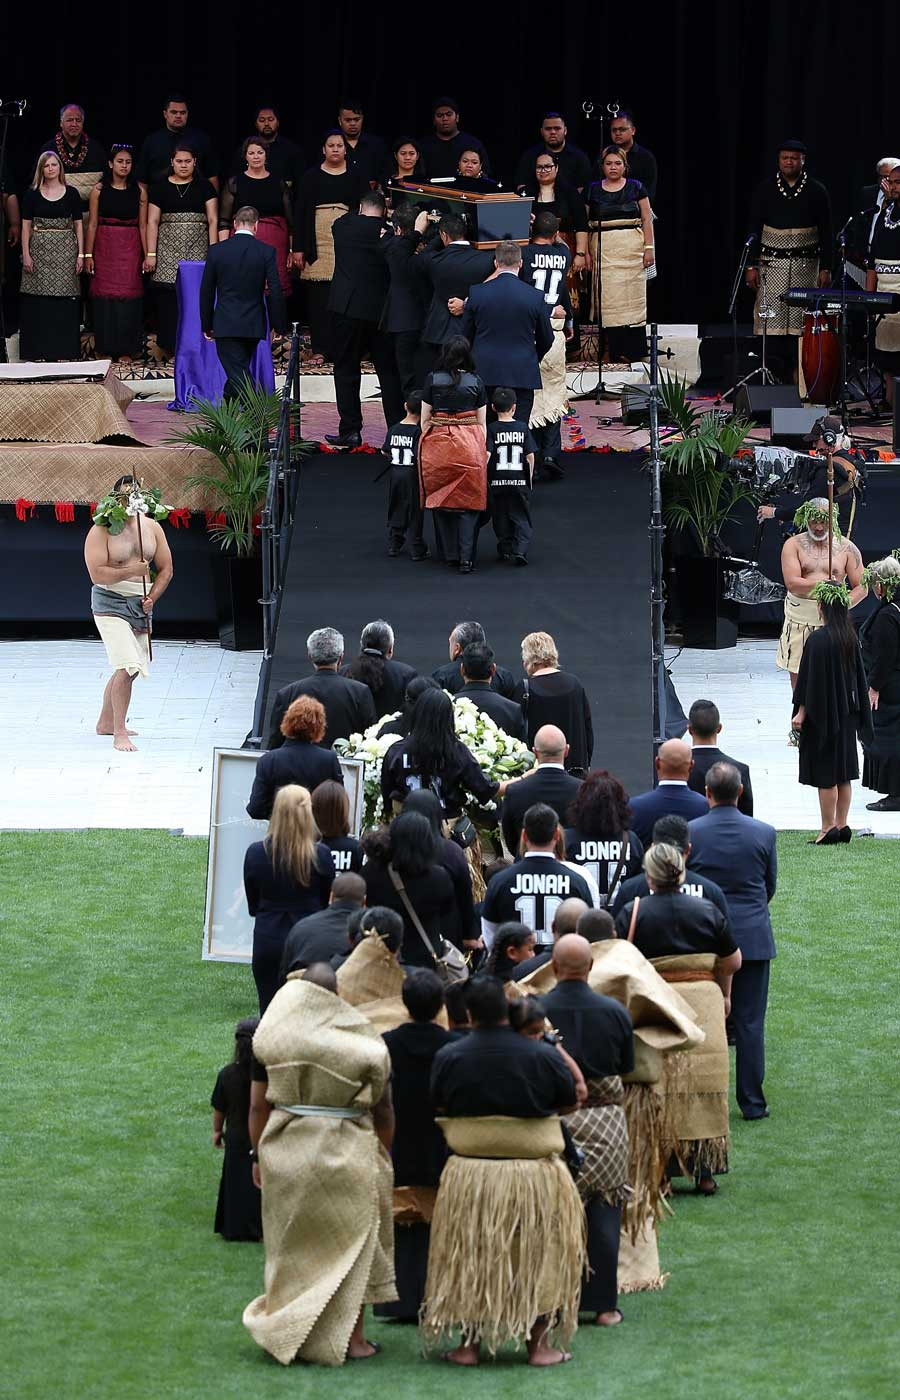 Jonah Lomu's casket arrives followed by family at the Public Memorial,